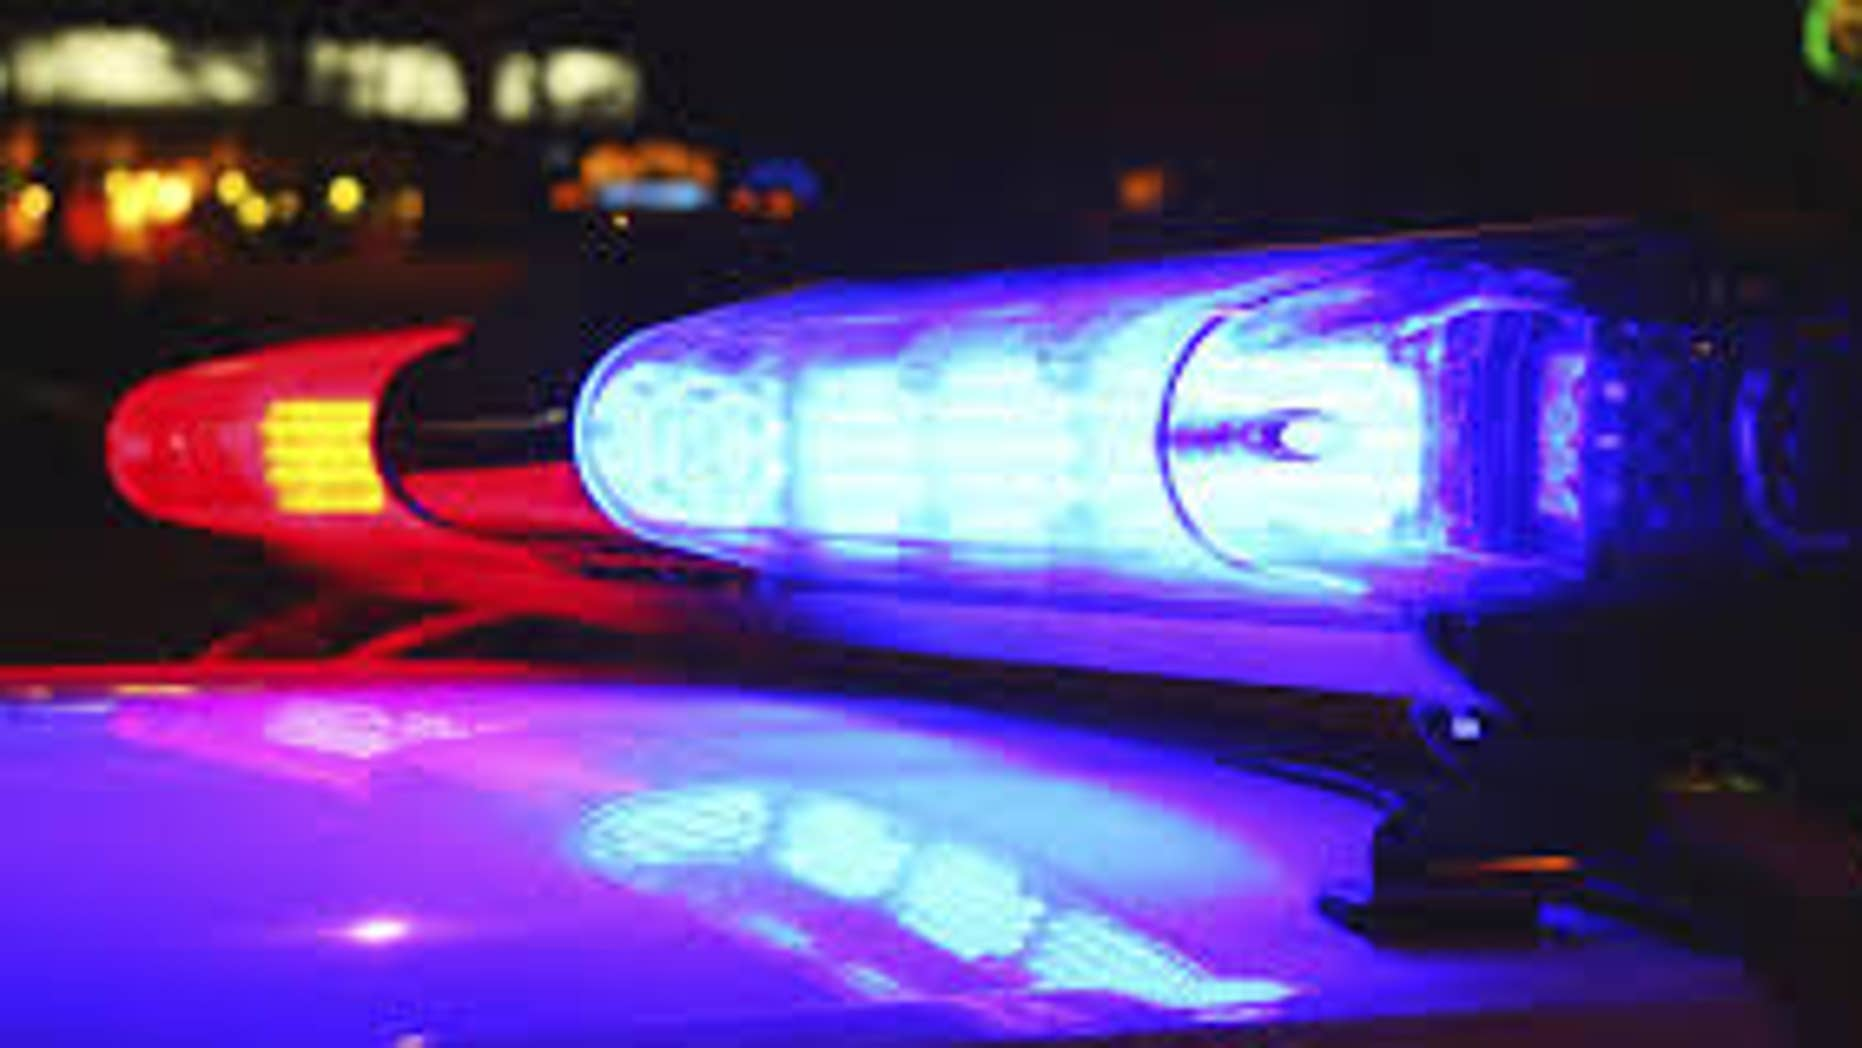 A wounded police officer was in stable condition after a shooting Friday in Auburn, Ala., authorities say.